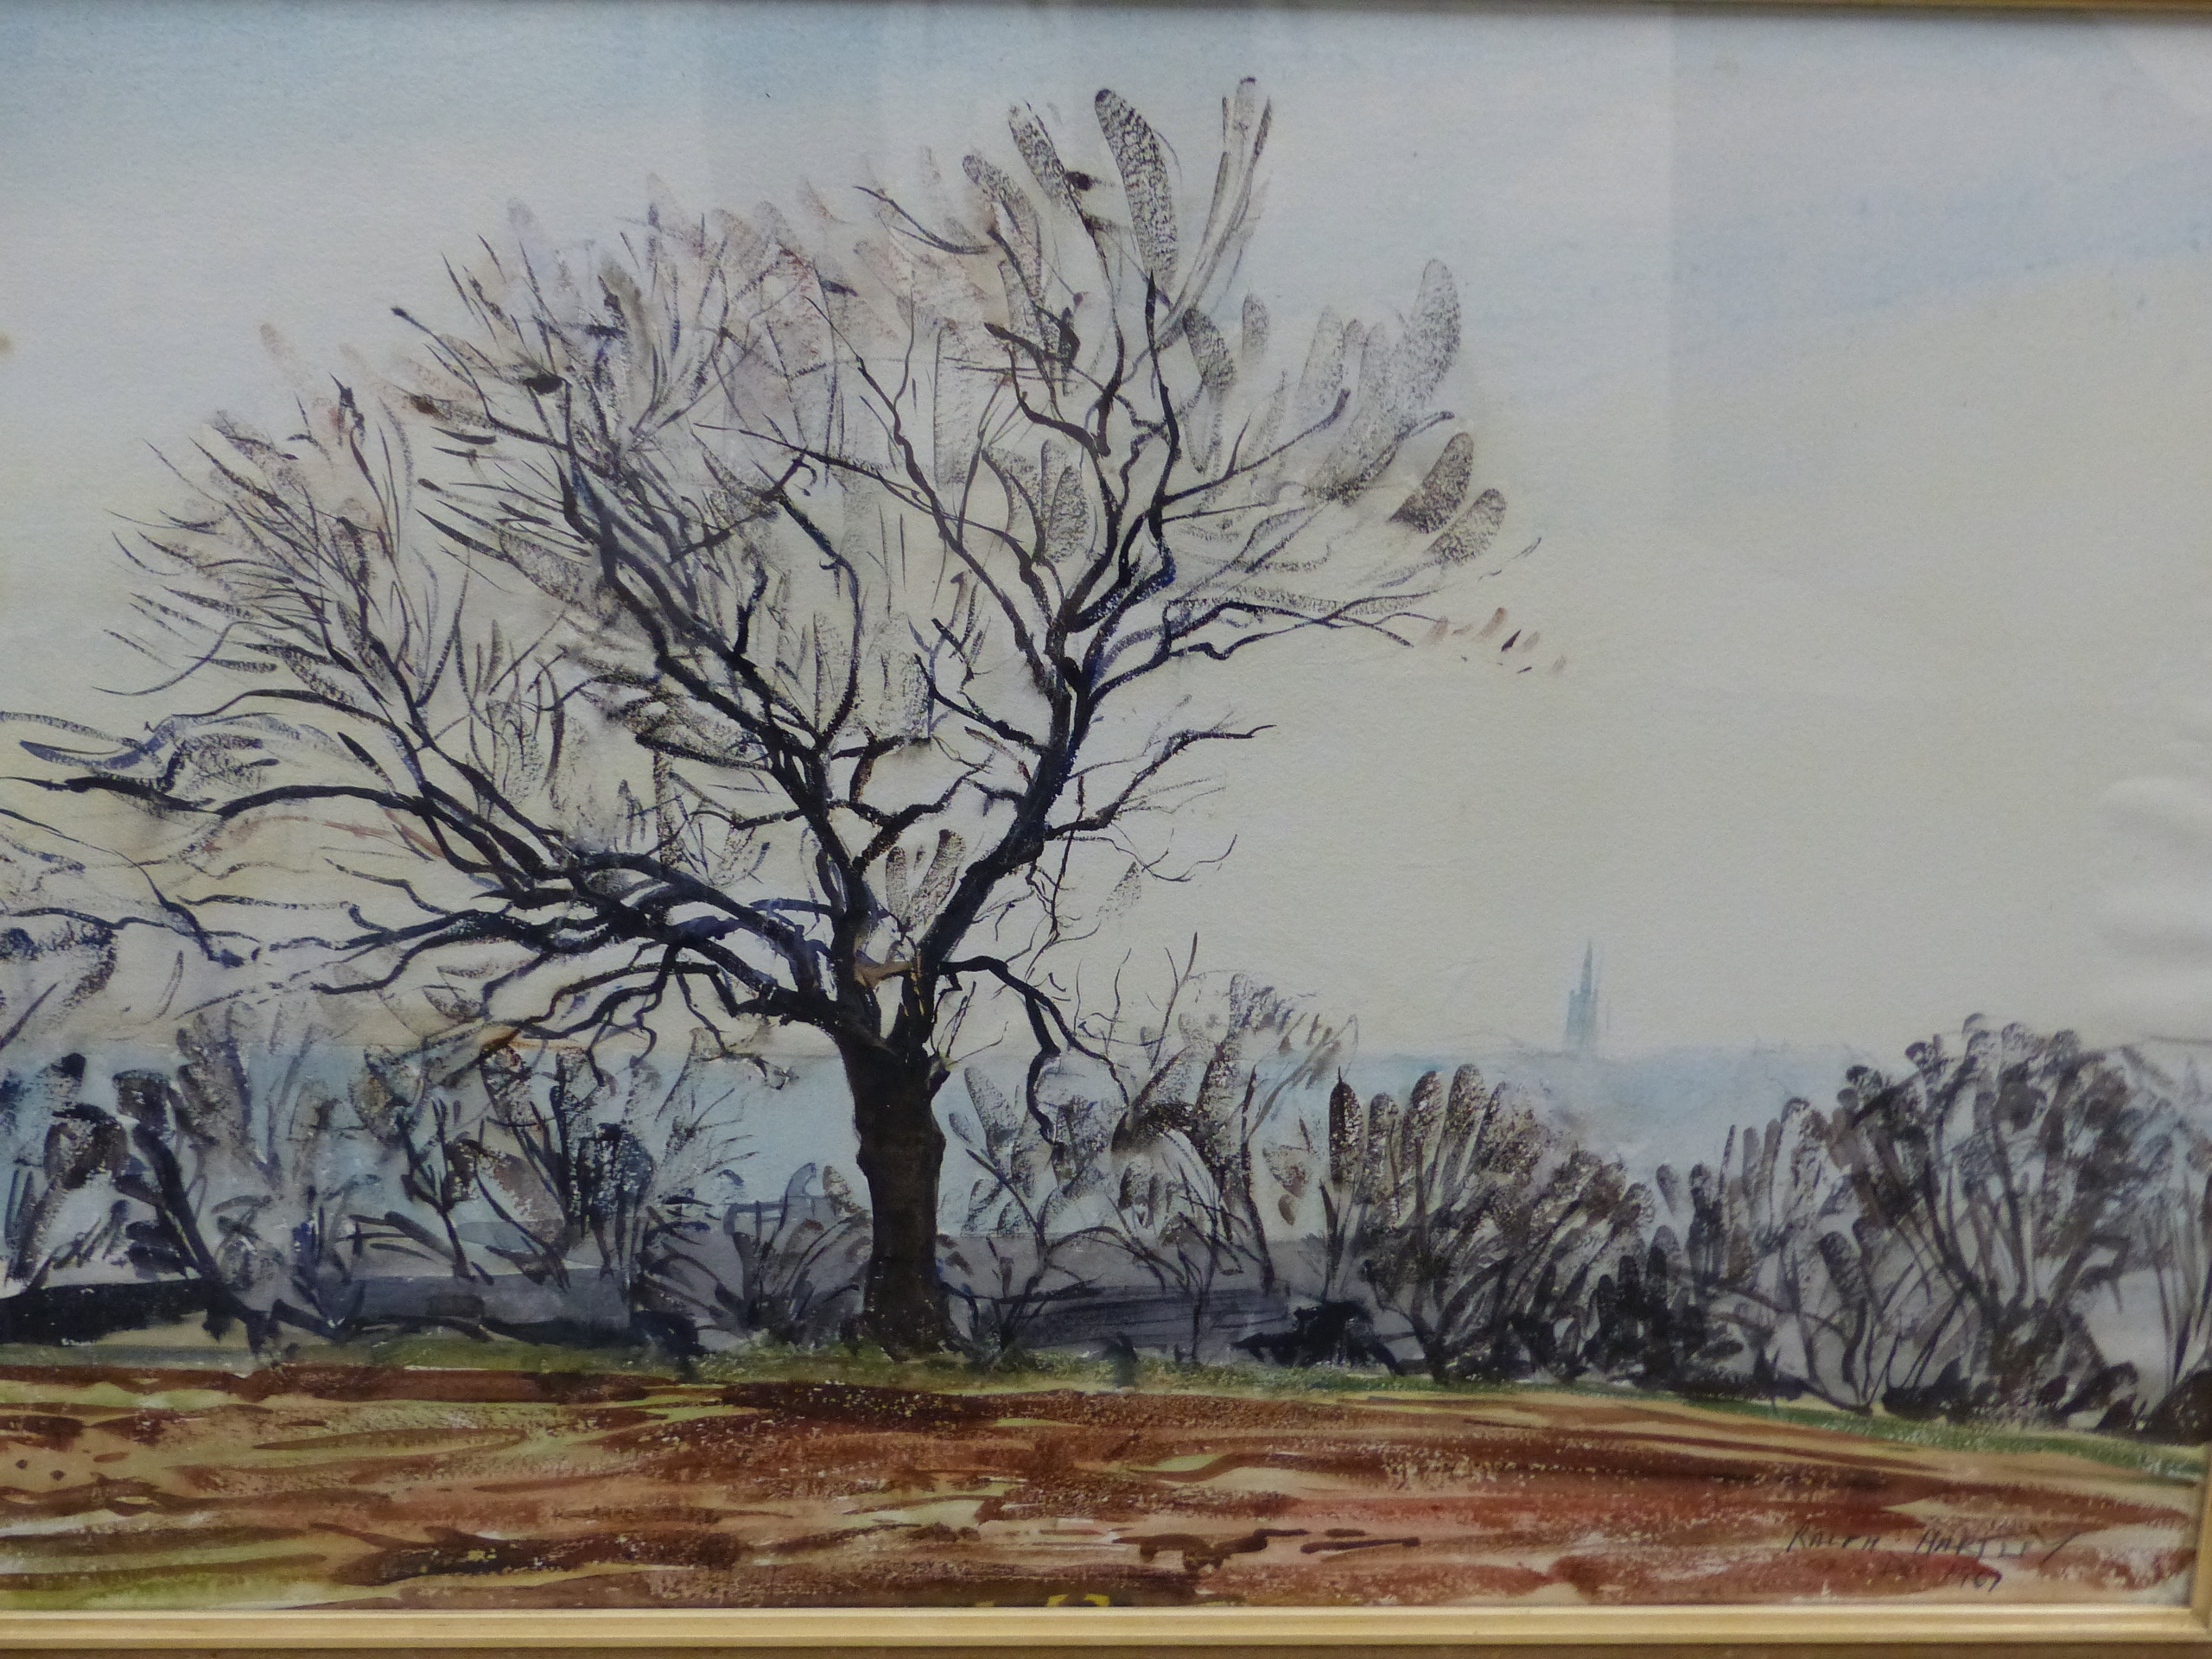 •RALPH HARTLEY (1926-1988 ARR. TWO LANDSCAPE OF TREES IN RURAL SETTINGS, SIGNED WATERCOLOURS 57 x 76 - Image 4 of 7